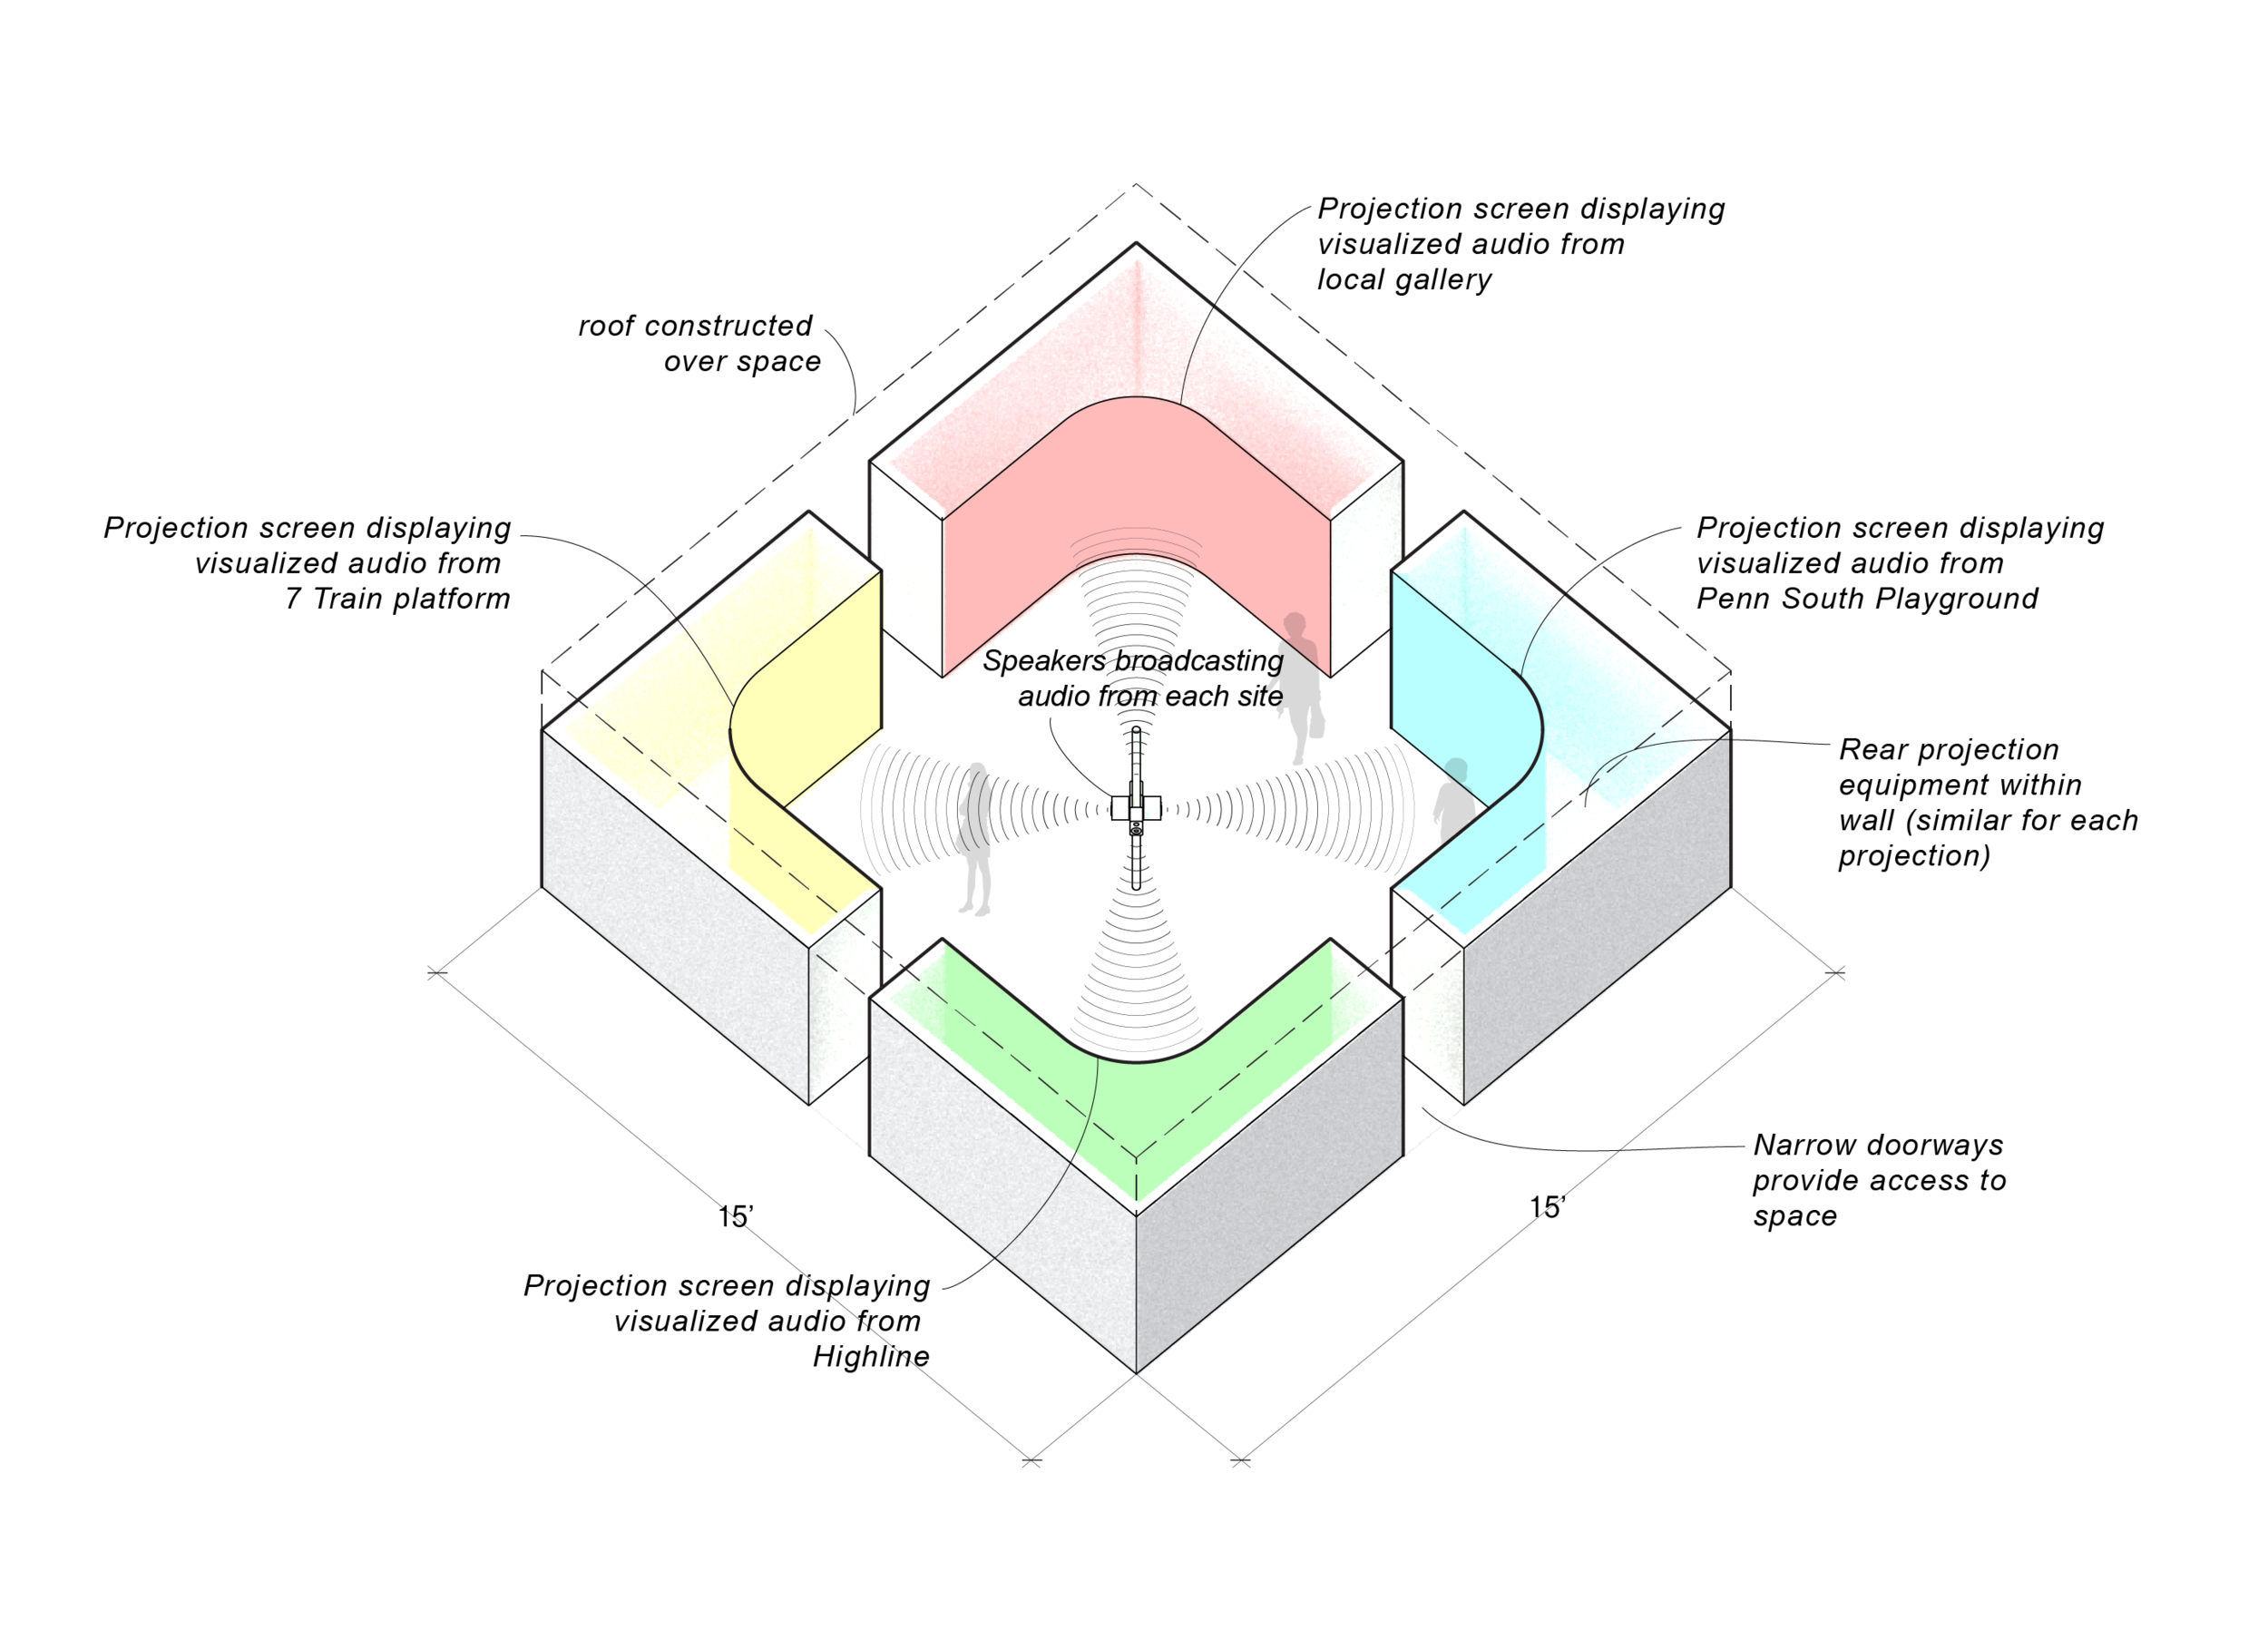 the shed diagram axo 2-02.png